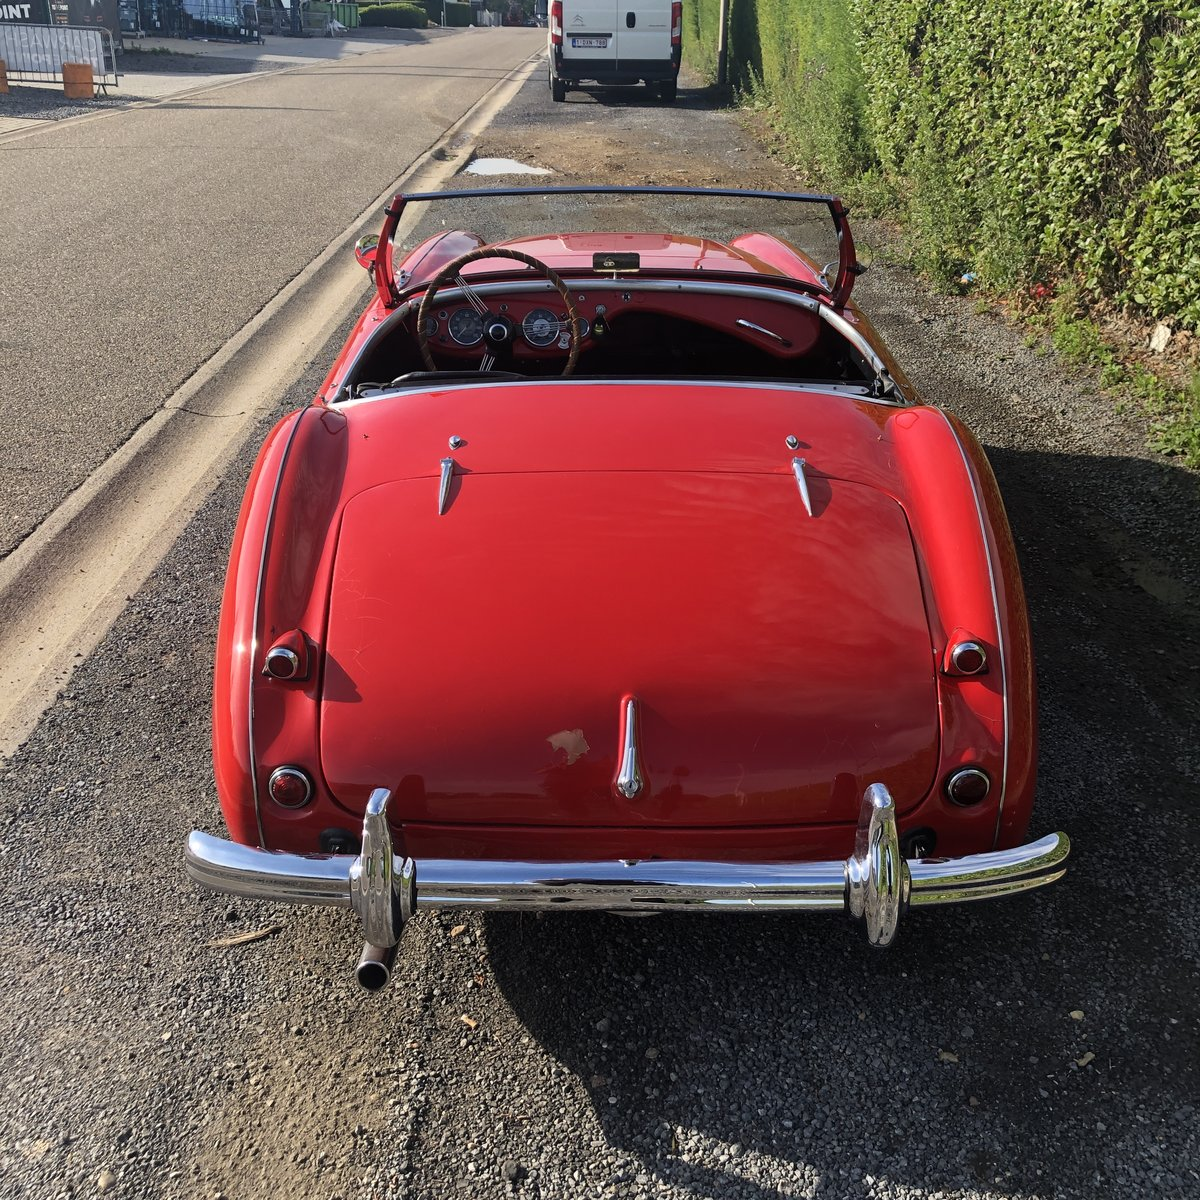 1955 Austin Healey 100/4 BN2 LHD For Sale (picture 3 of 6)